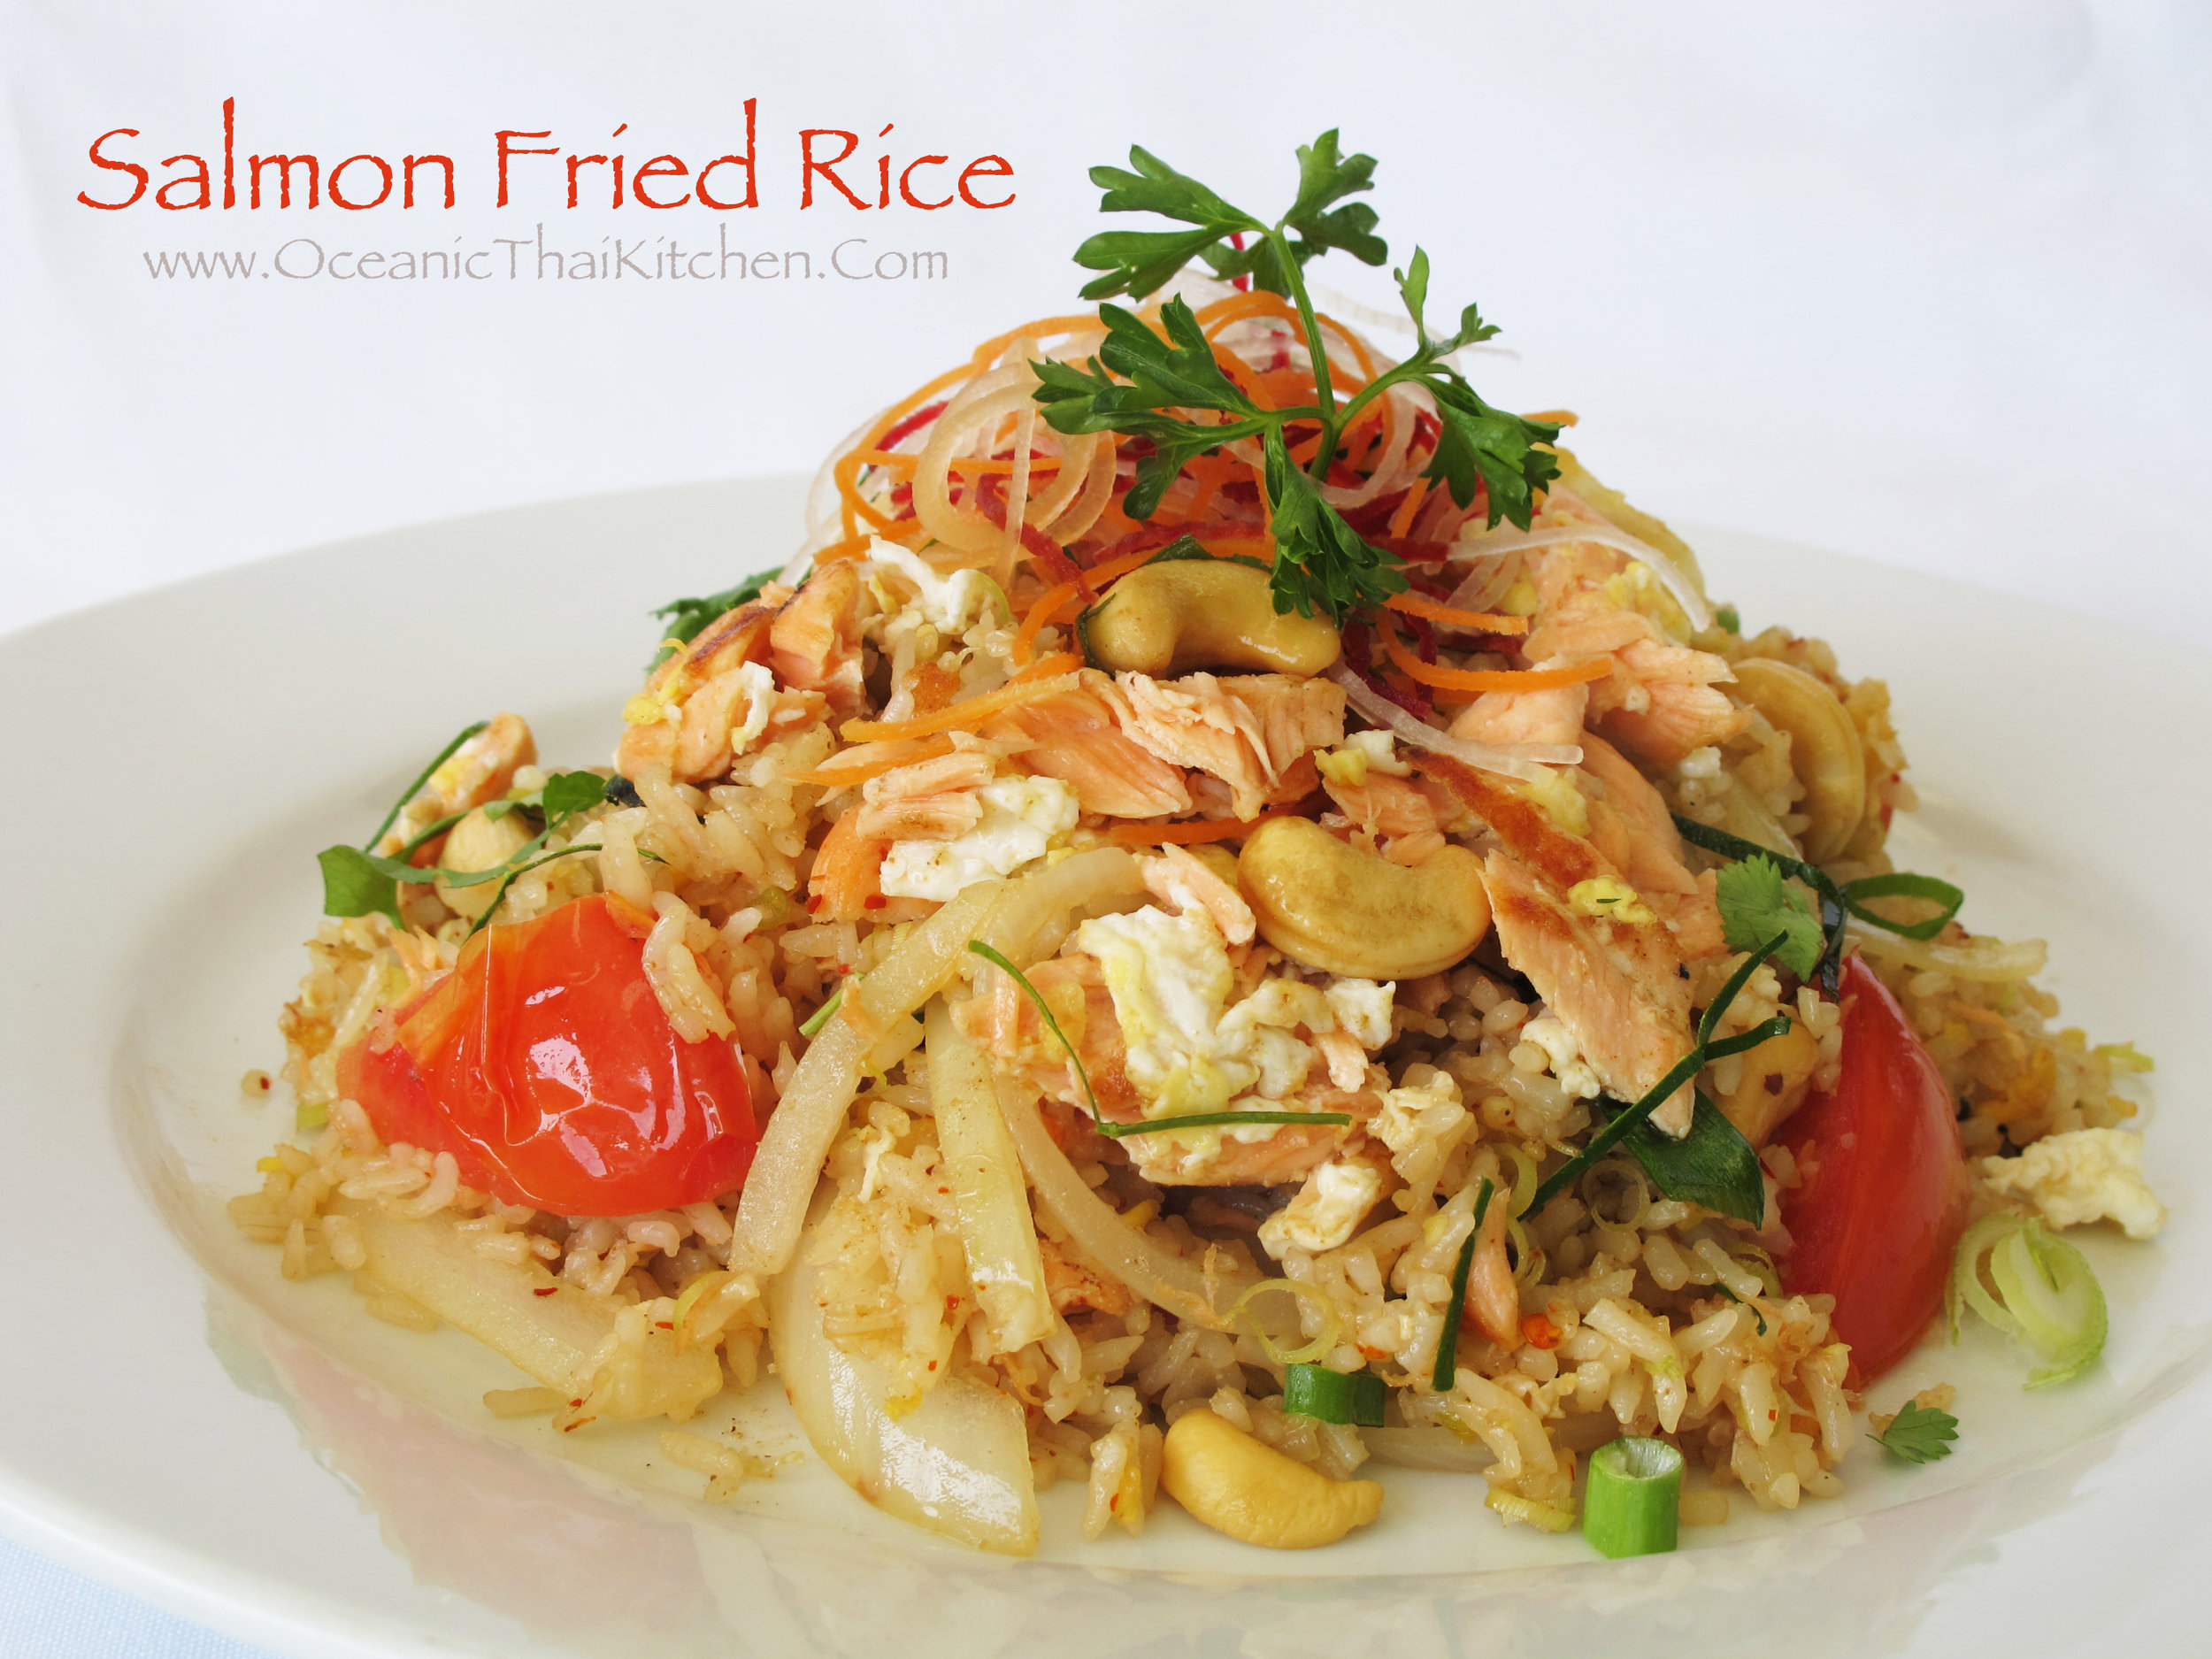 Salmon Fried Rice.jpg